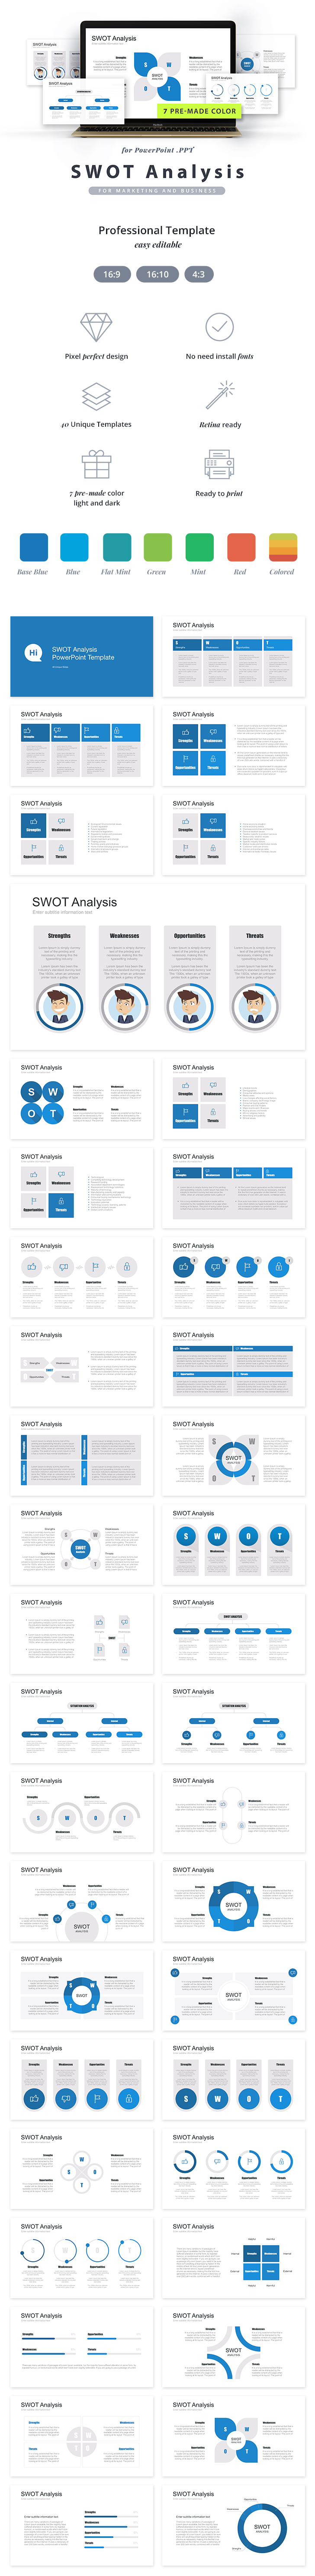 Swot Analysis Powerpoint Template   Unique Slides Ppt  Pre